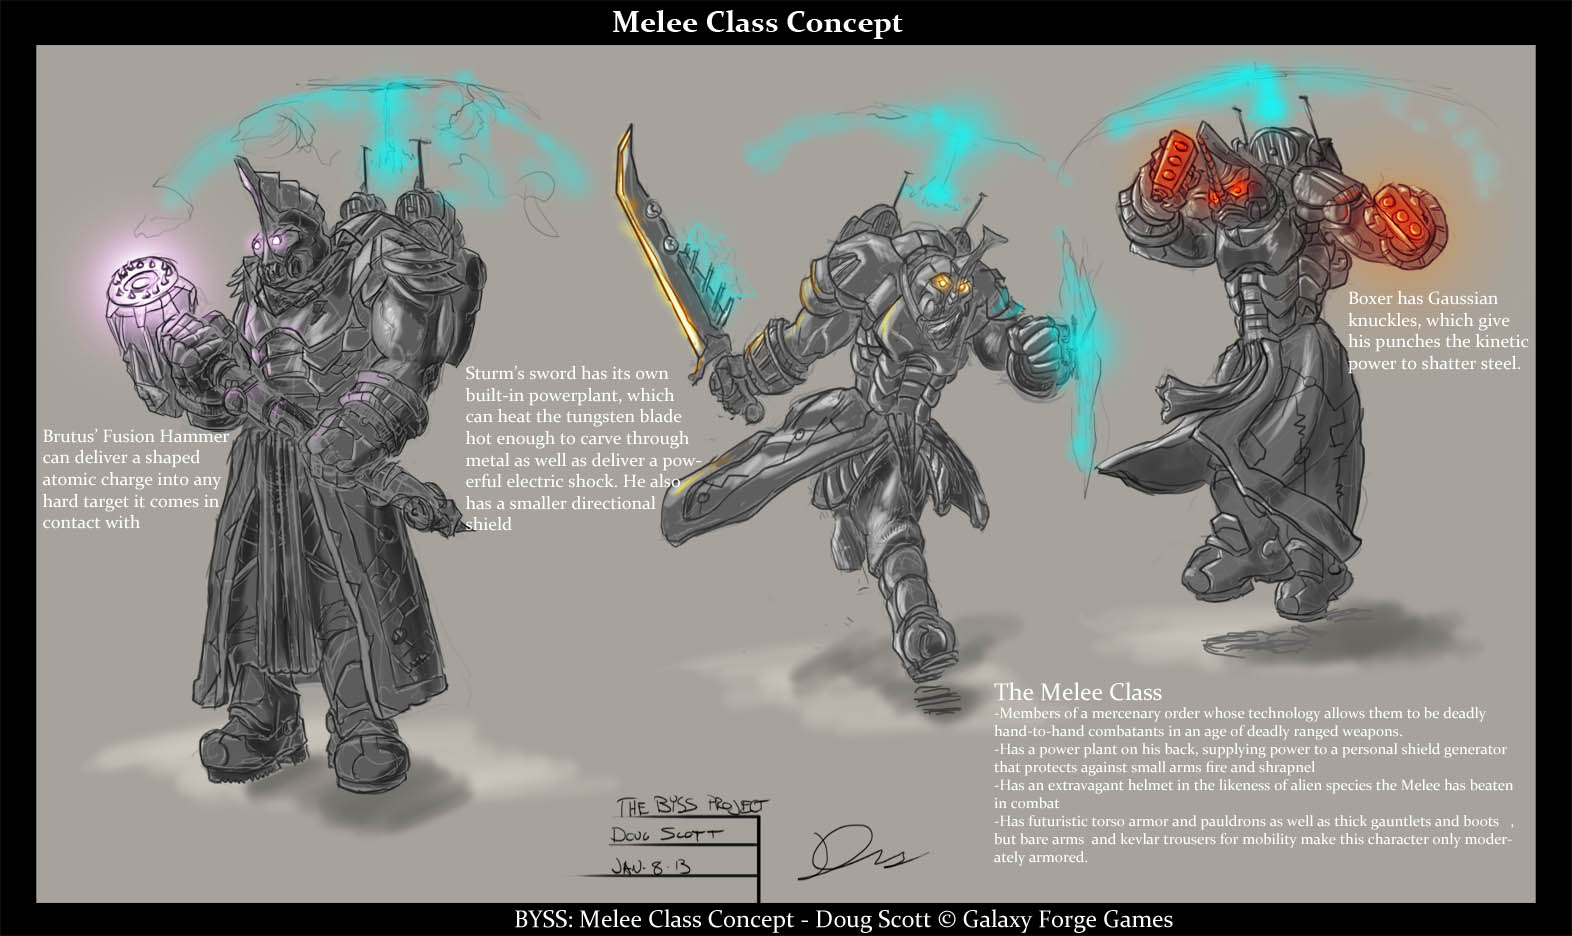 Game Design Character Classes : Melee character classes image galaxy forge games mod db